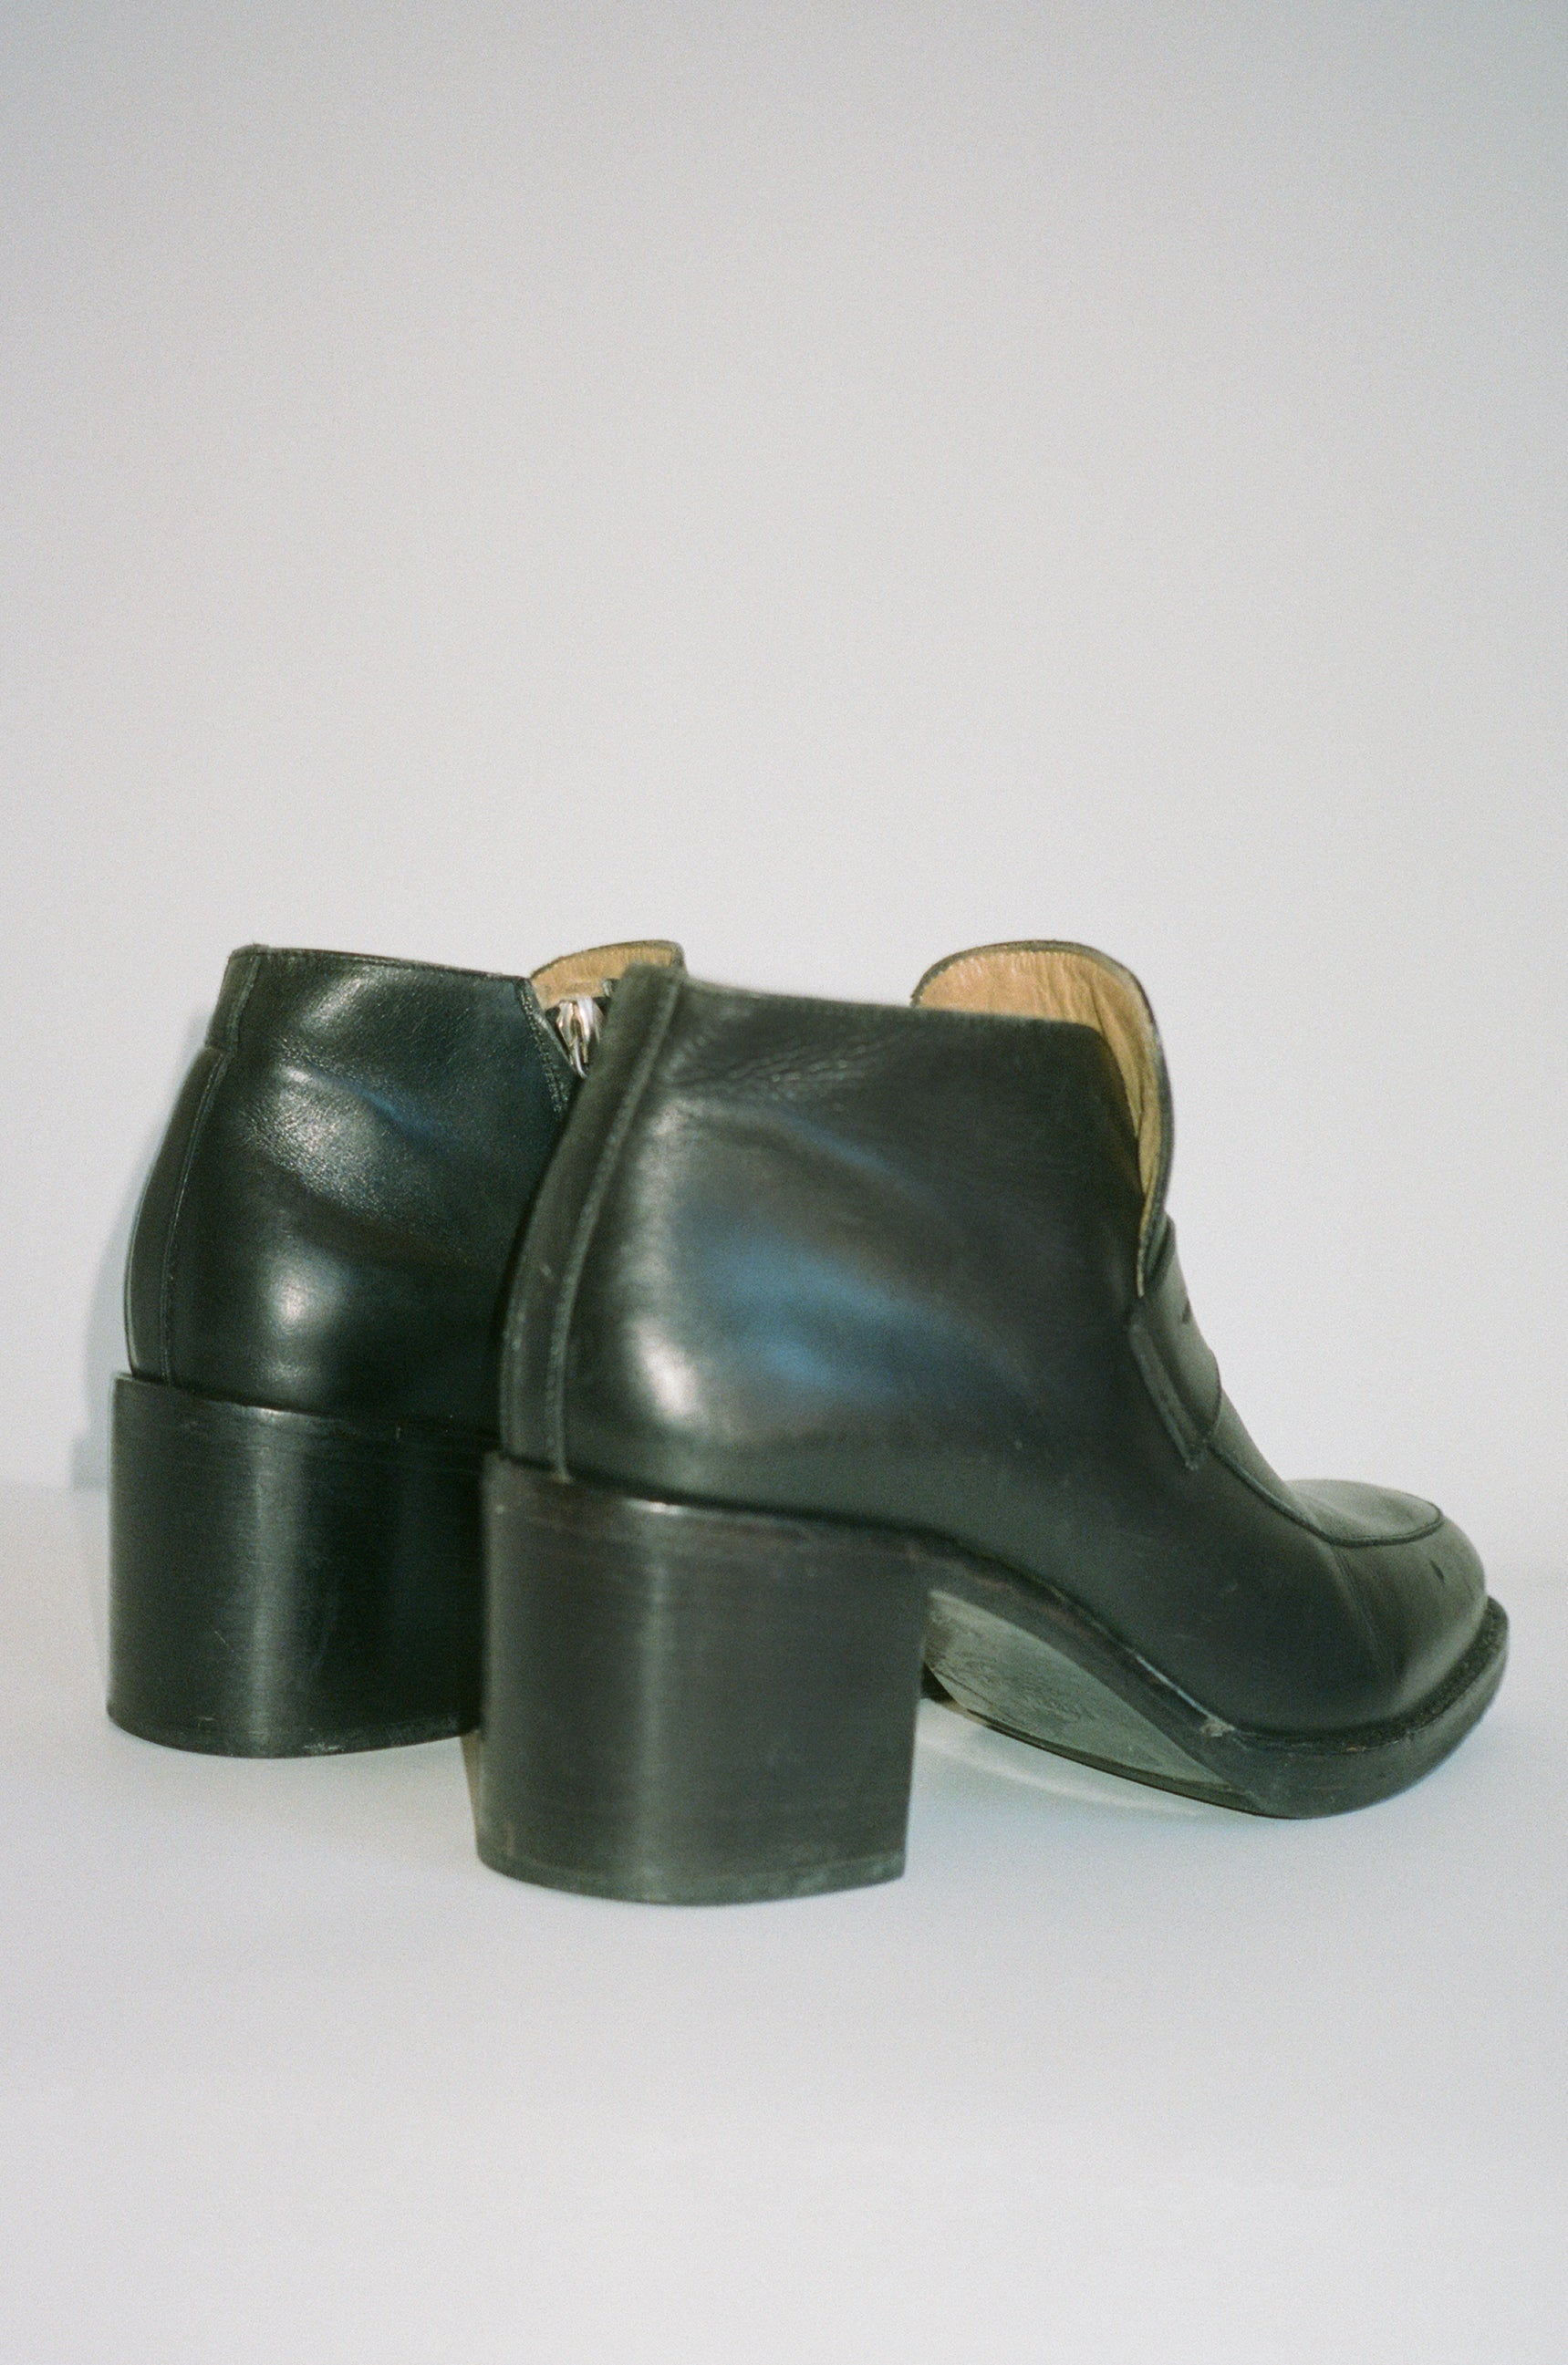 Freelance Loafer Boots sz 39